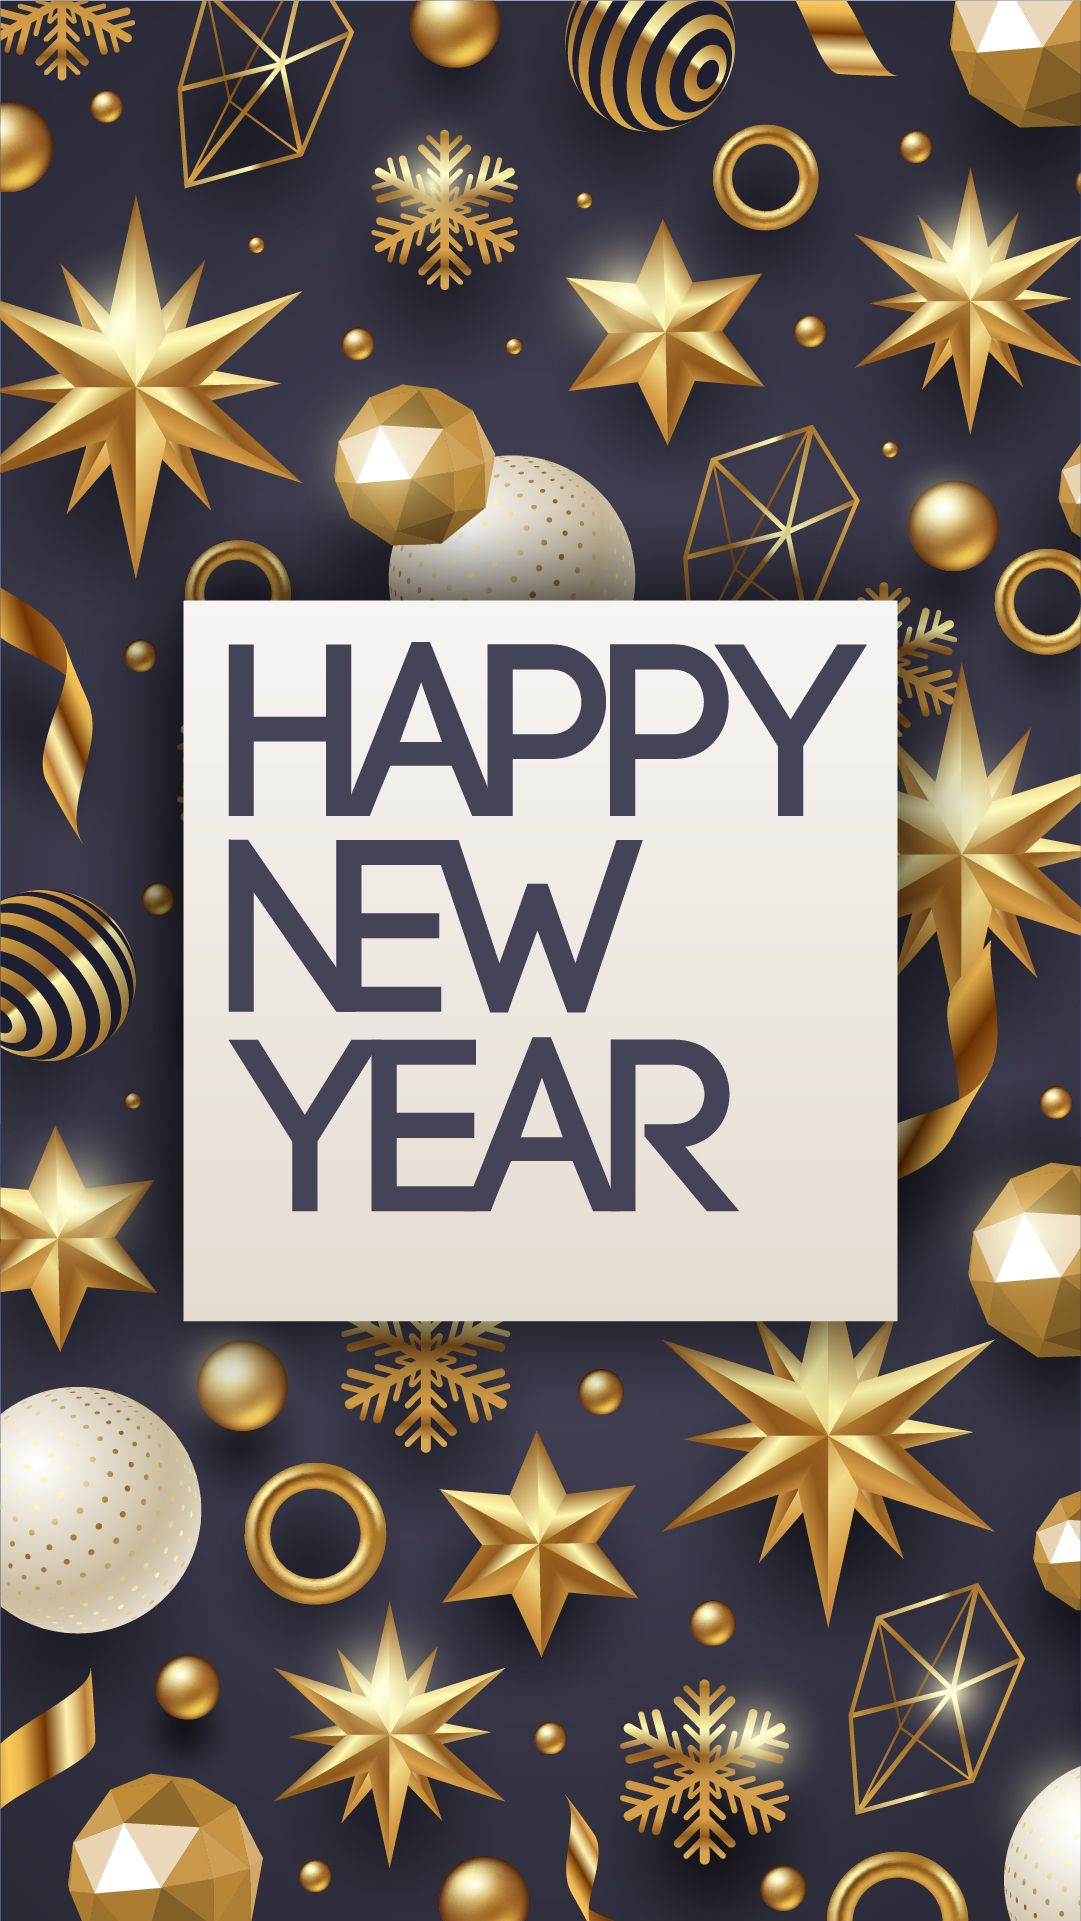 Happy New Year Coming Year New Year Eve New Year Party Resolution Day Wishes Countdown New Years Party Christmas Activities Instagram Template